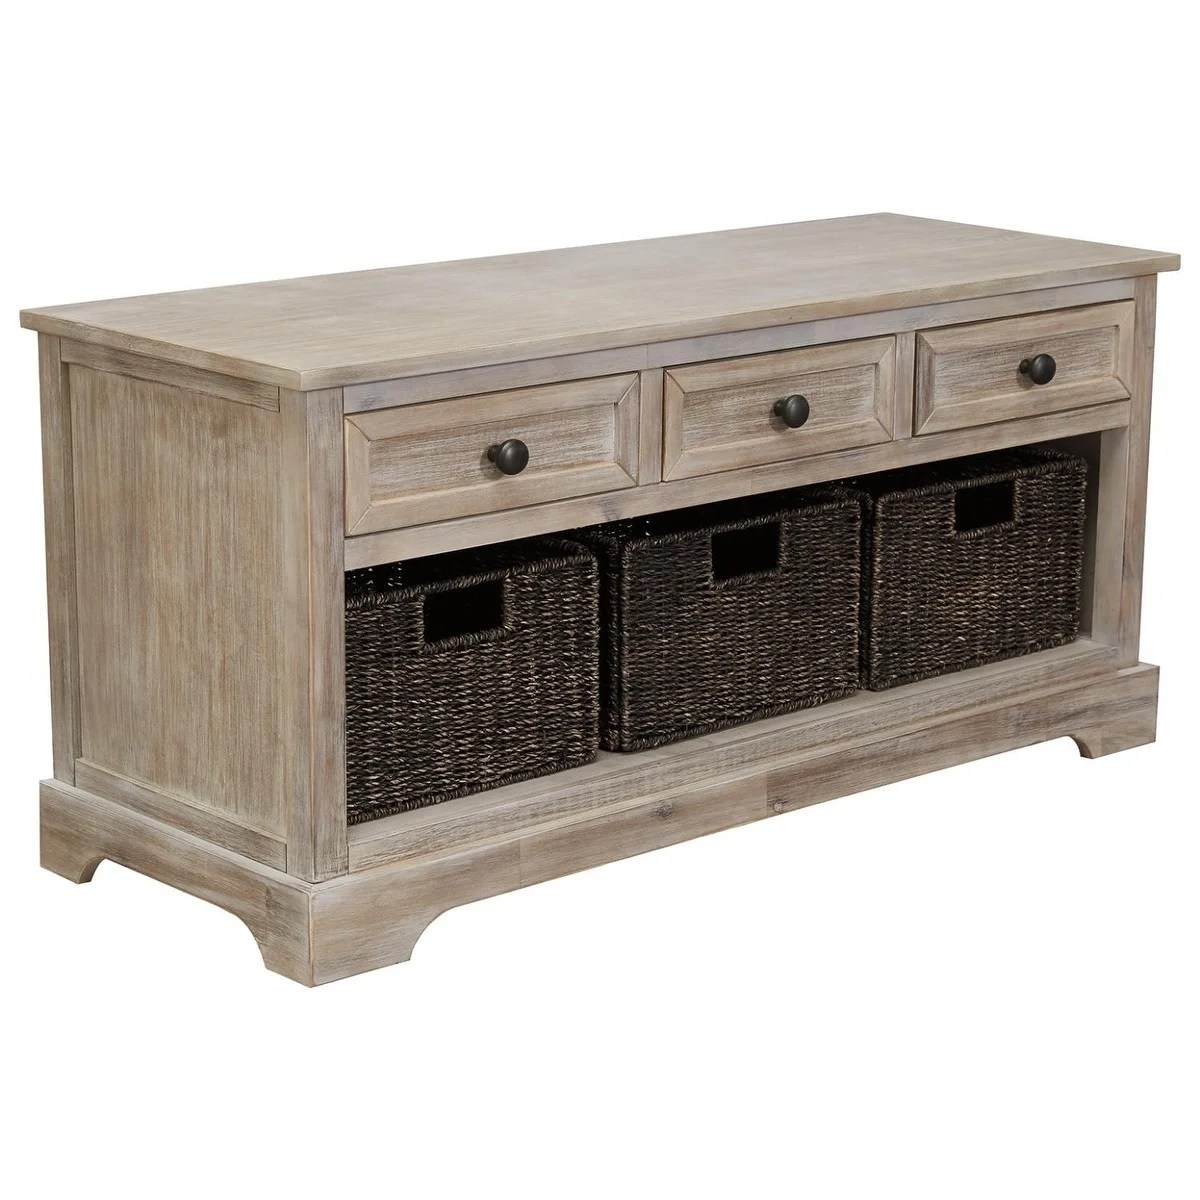 details about storage bench drawers baskets brown rustic organizer entryway home furniture new